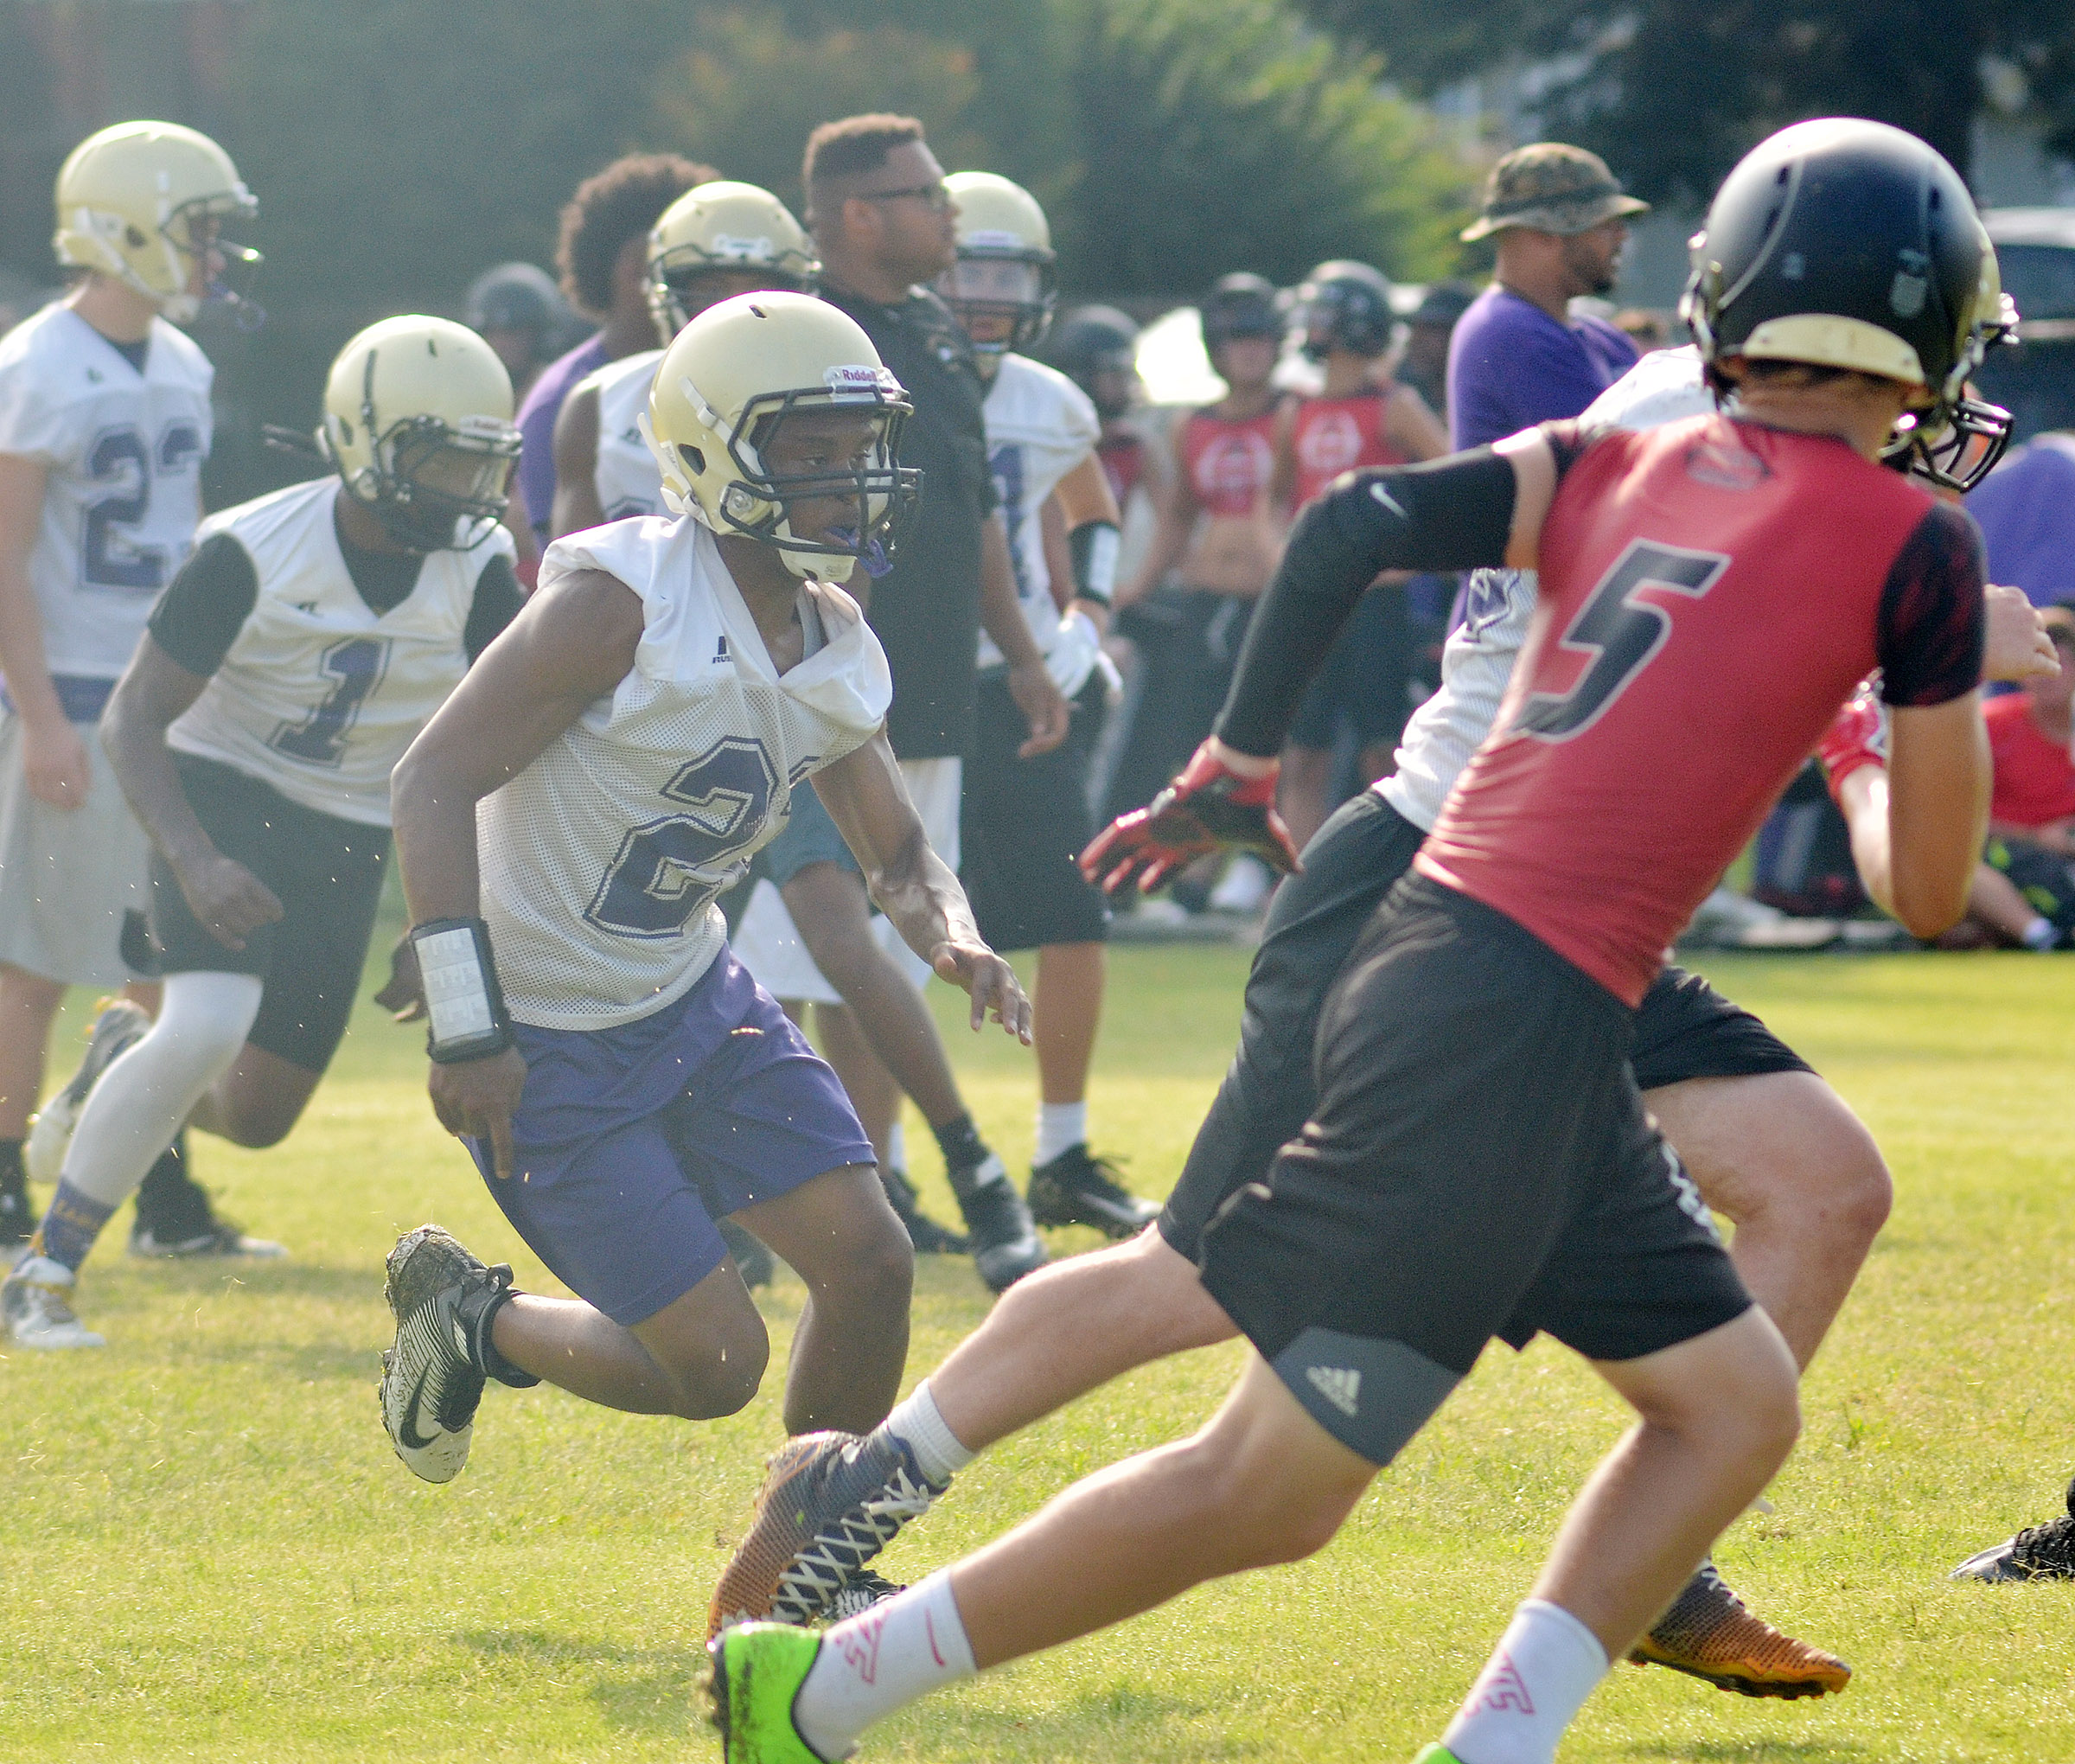 CHS junior Daesean Vancleave runs a play during a scrimmage.